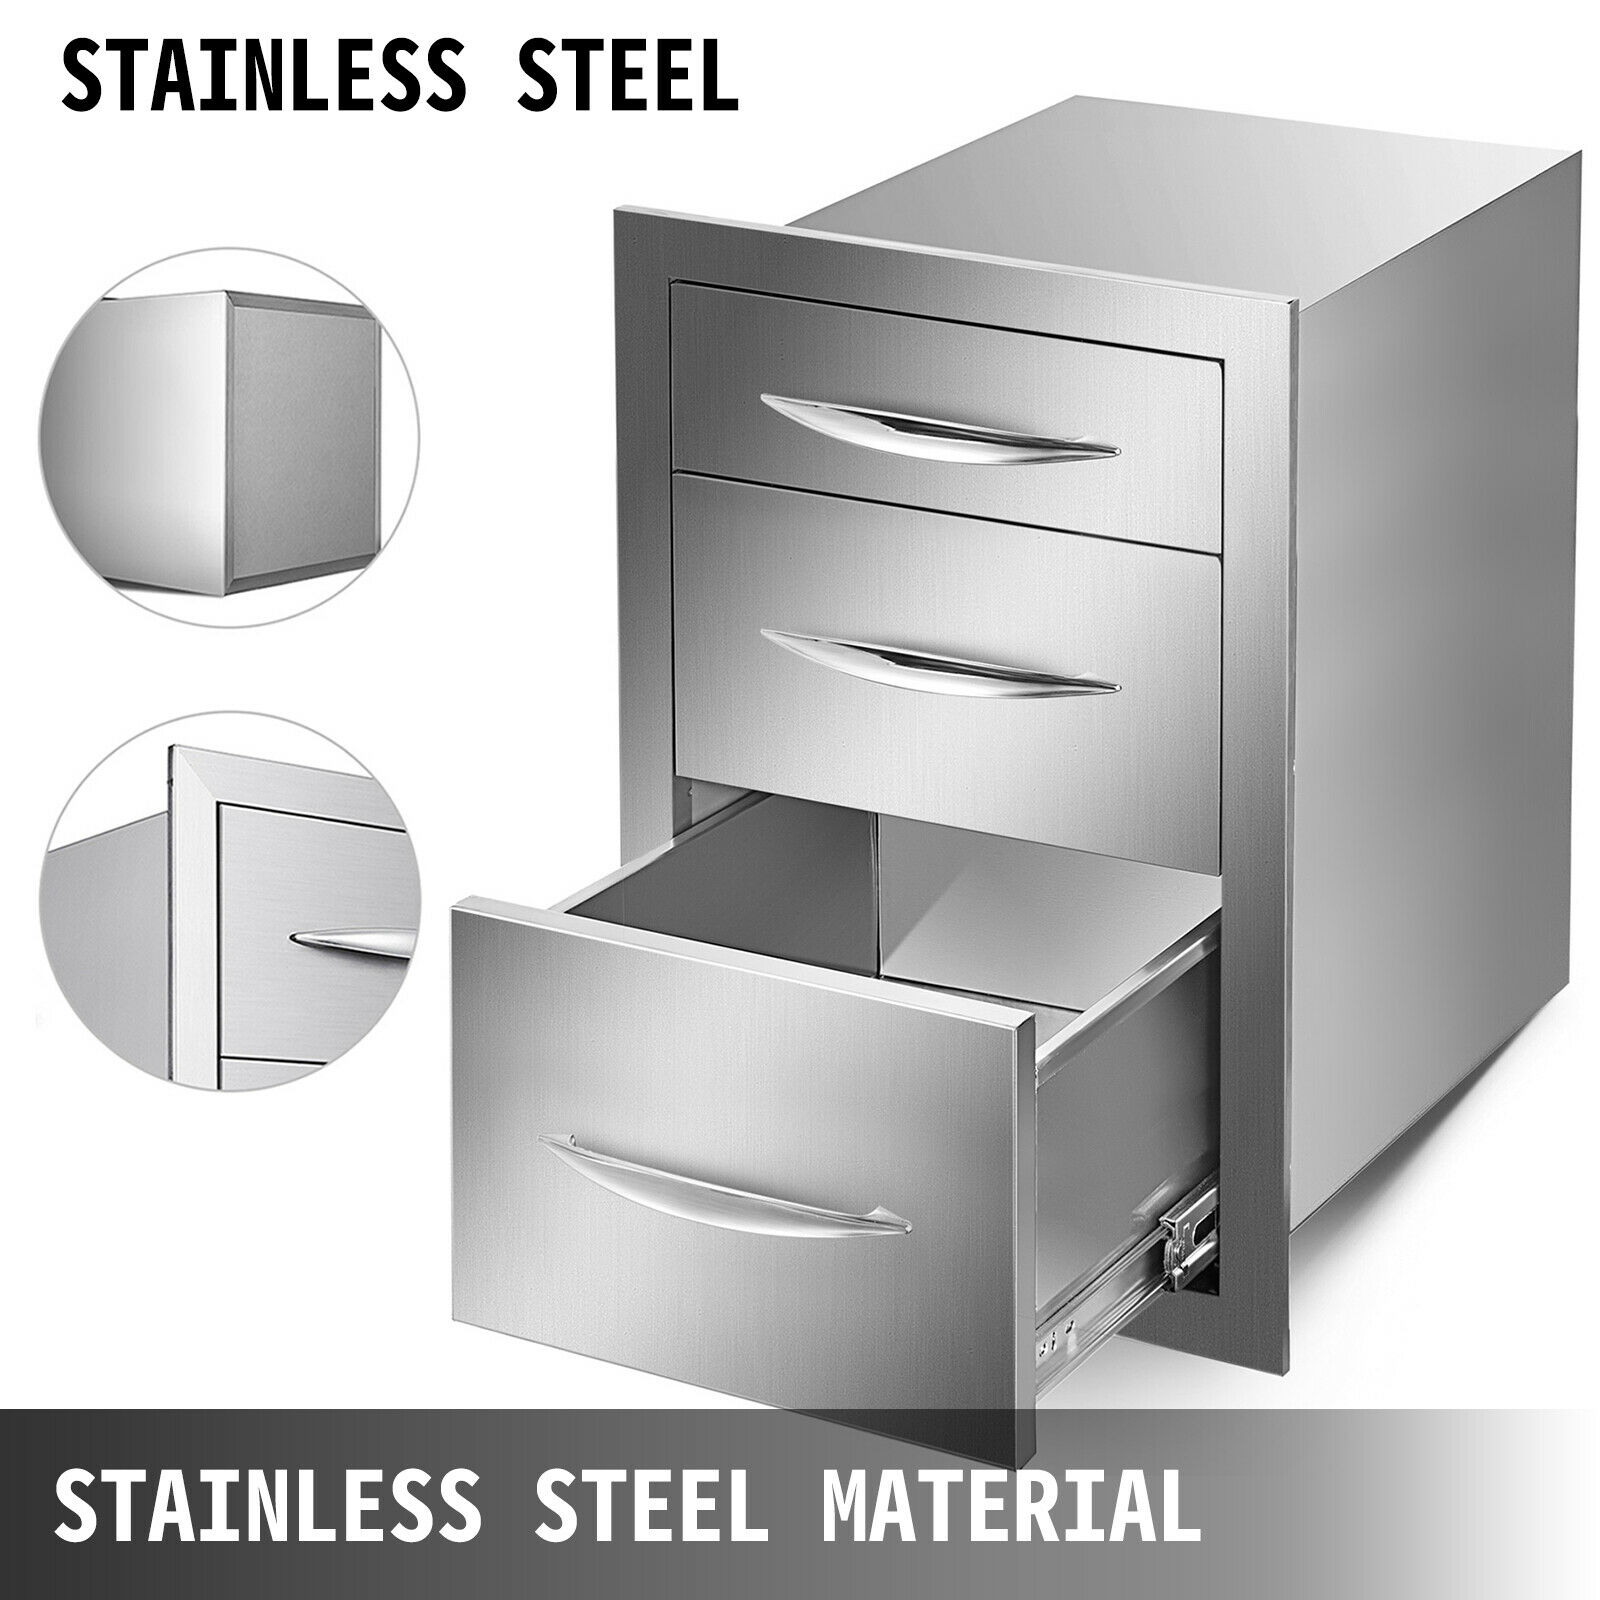 Free Shipping Outdoor Kitchen Drawer Stainless Steel Triple Access With Chrome Handle, 14 X20.25 X 23.2 Inch